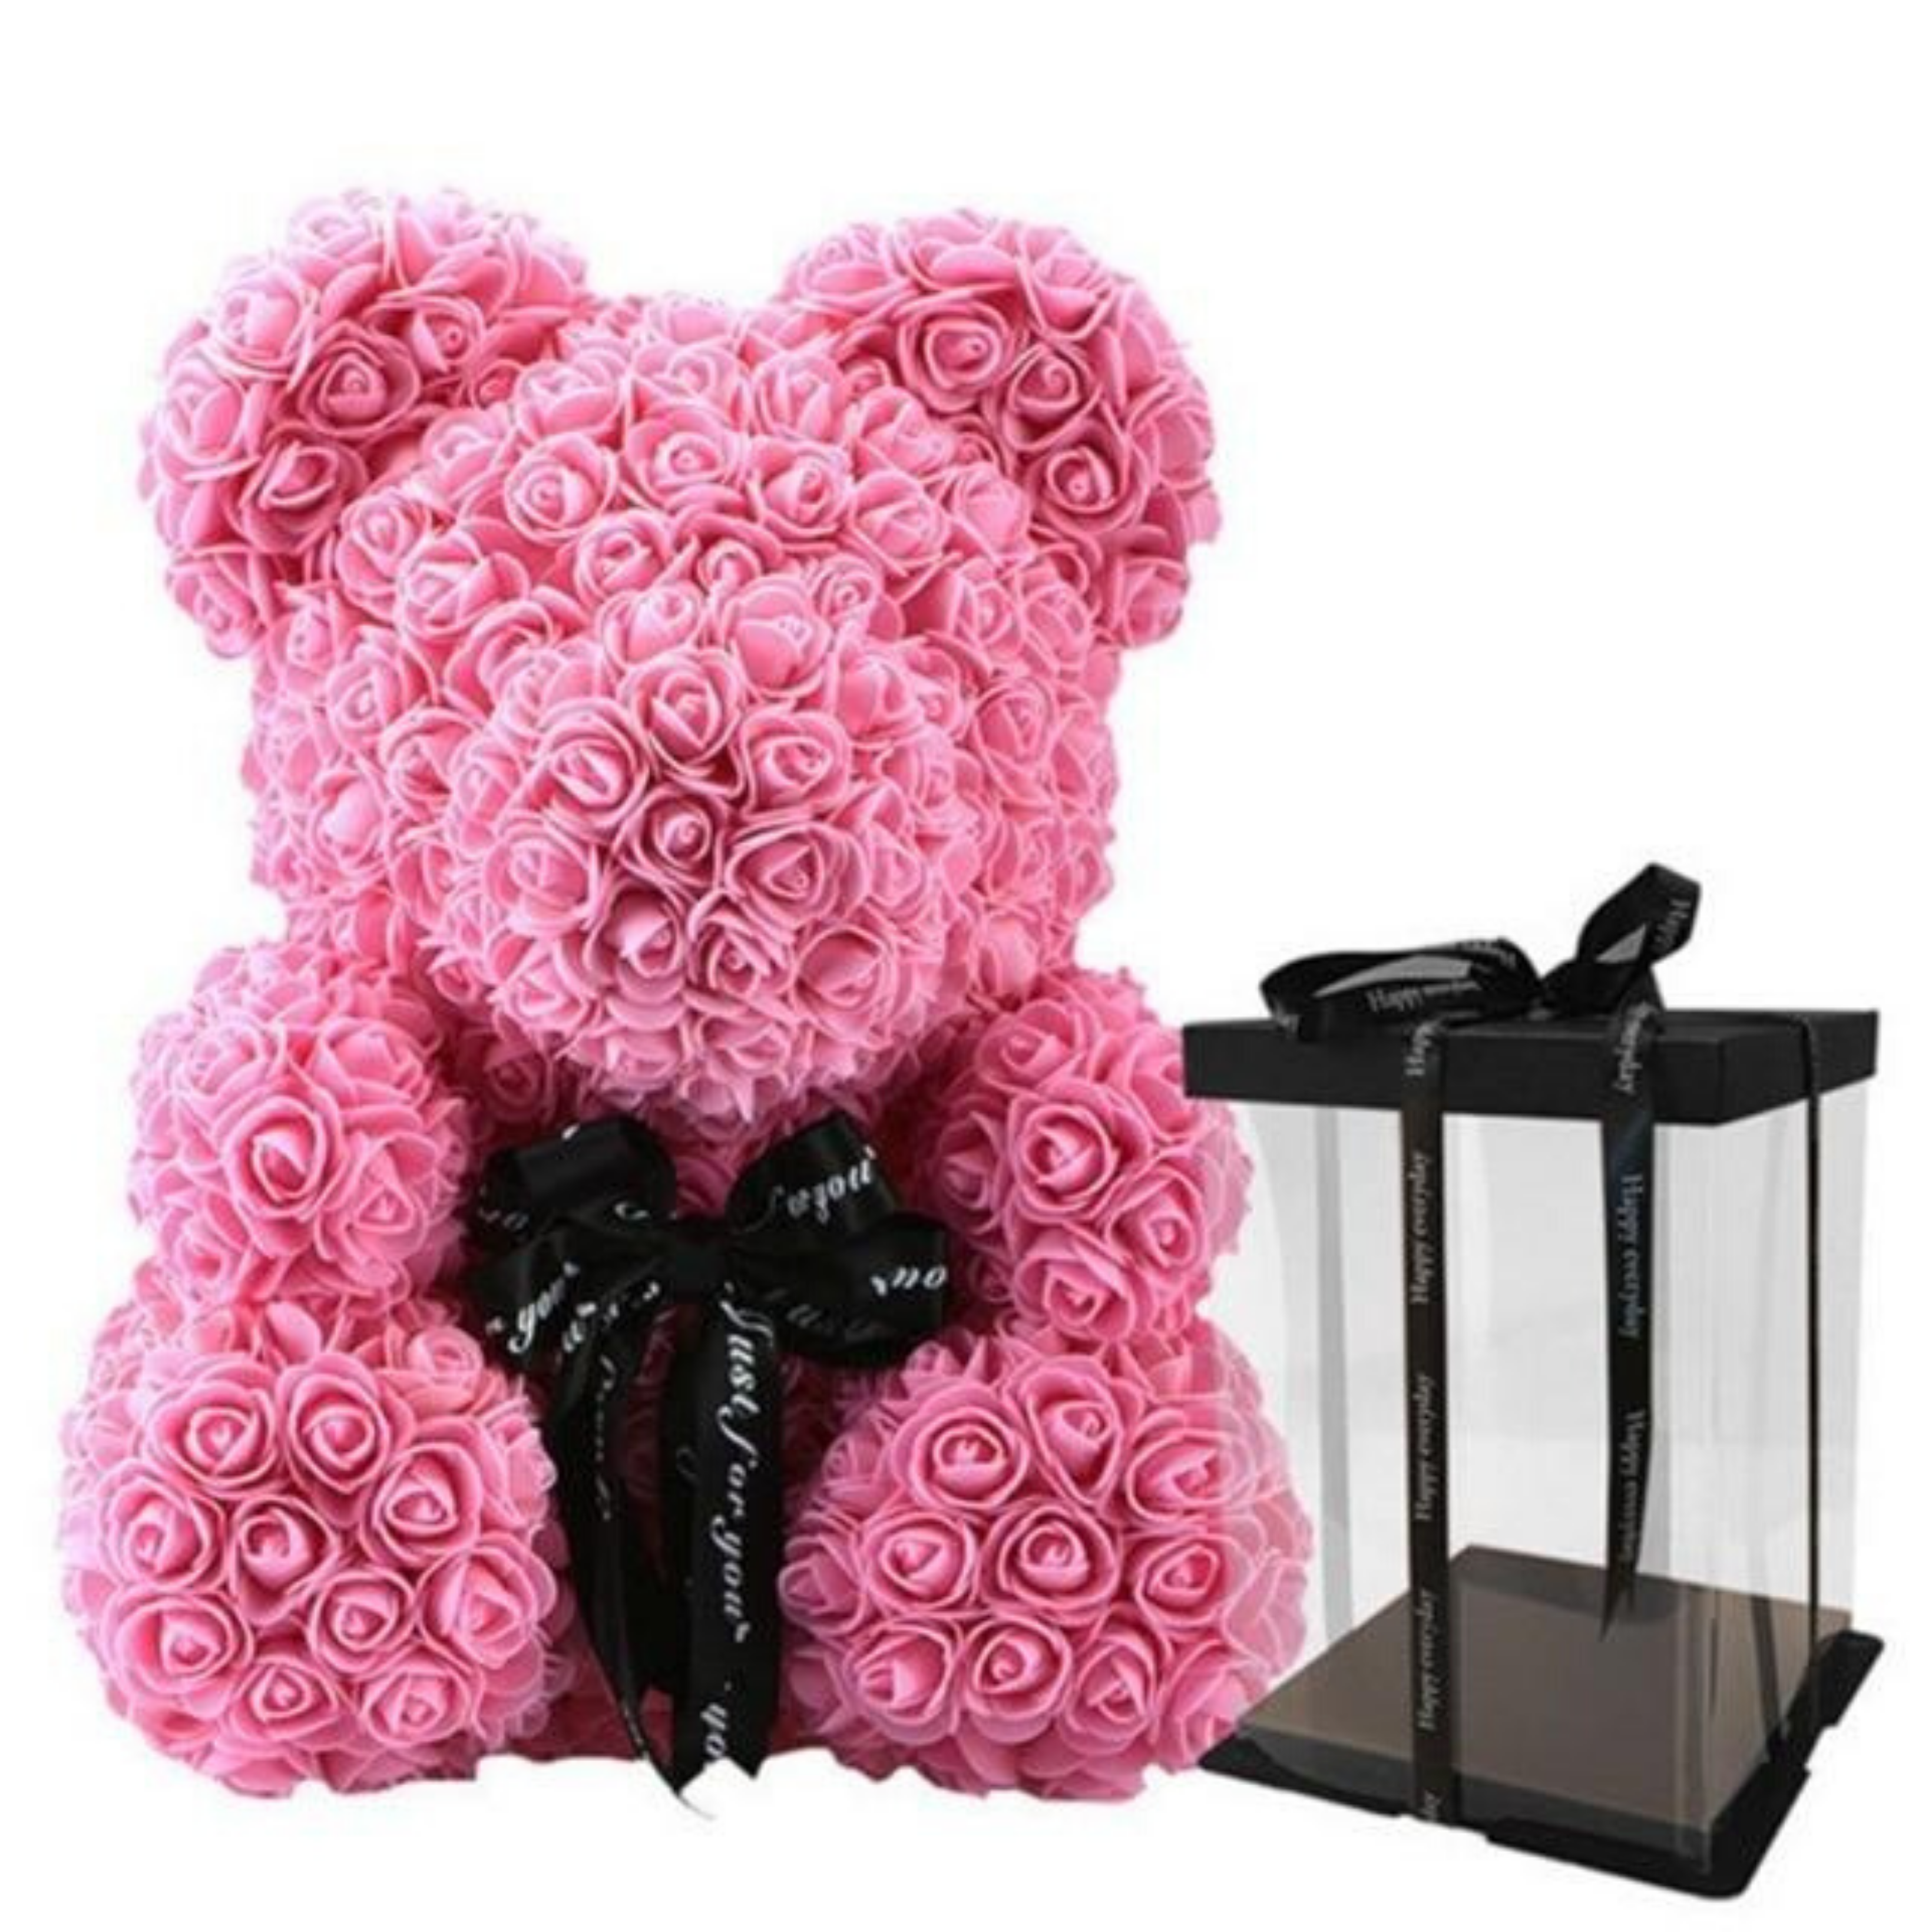 Best Rose Bear Valentines Gift Flower Teddy For Her 2020 Valentine